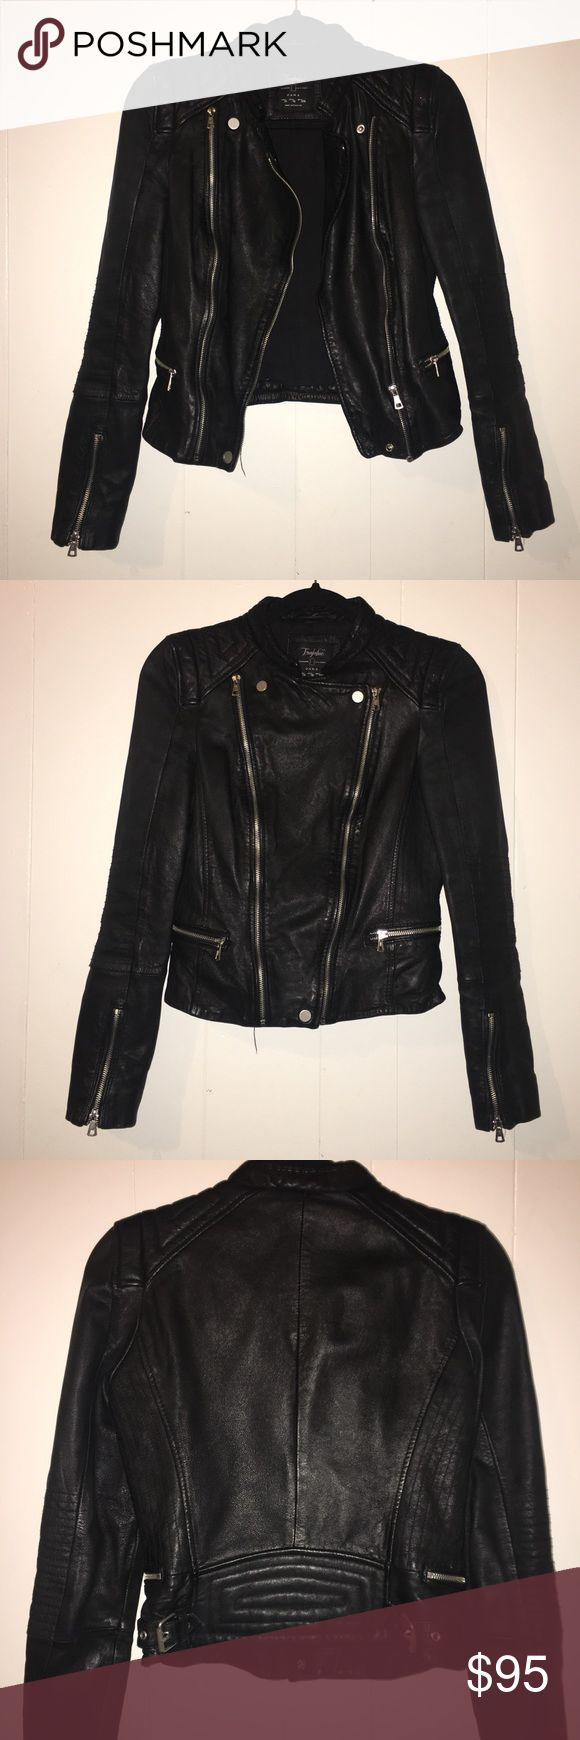 Zara Lambskin Leather Jacket Black Really cute lambskin leather jacket. All pictures taken with flash except for the last picture. No trade. Price firm. Zara Jackets & Coats